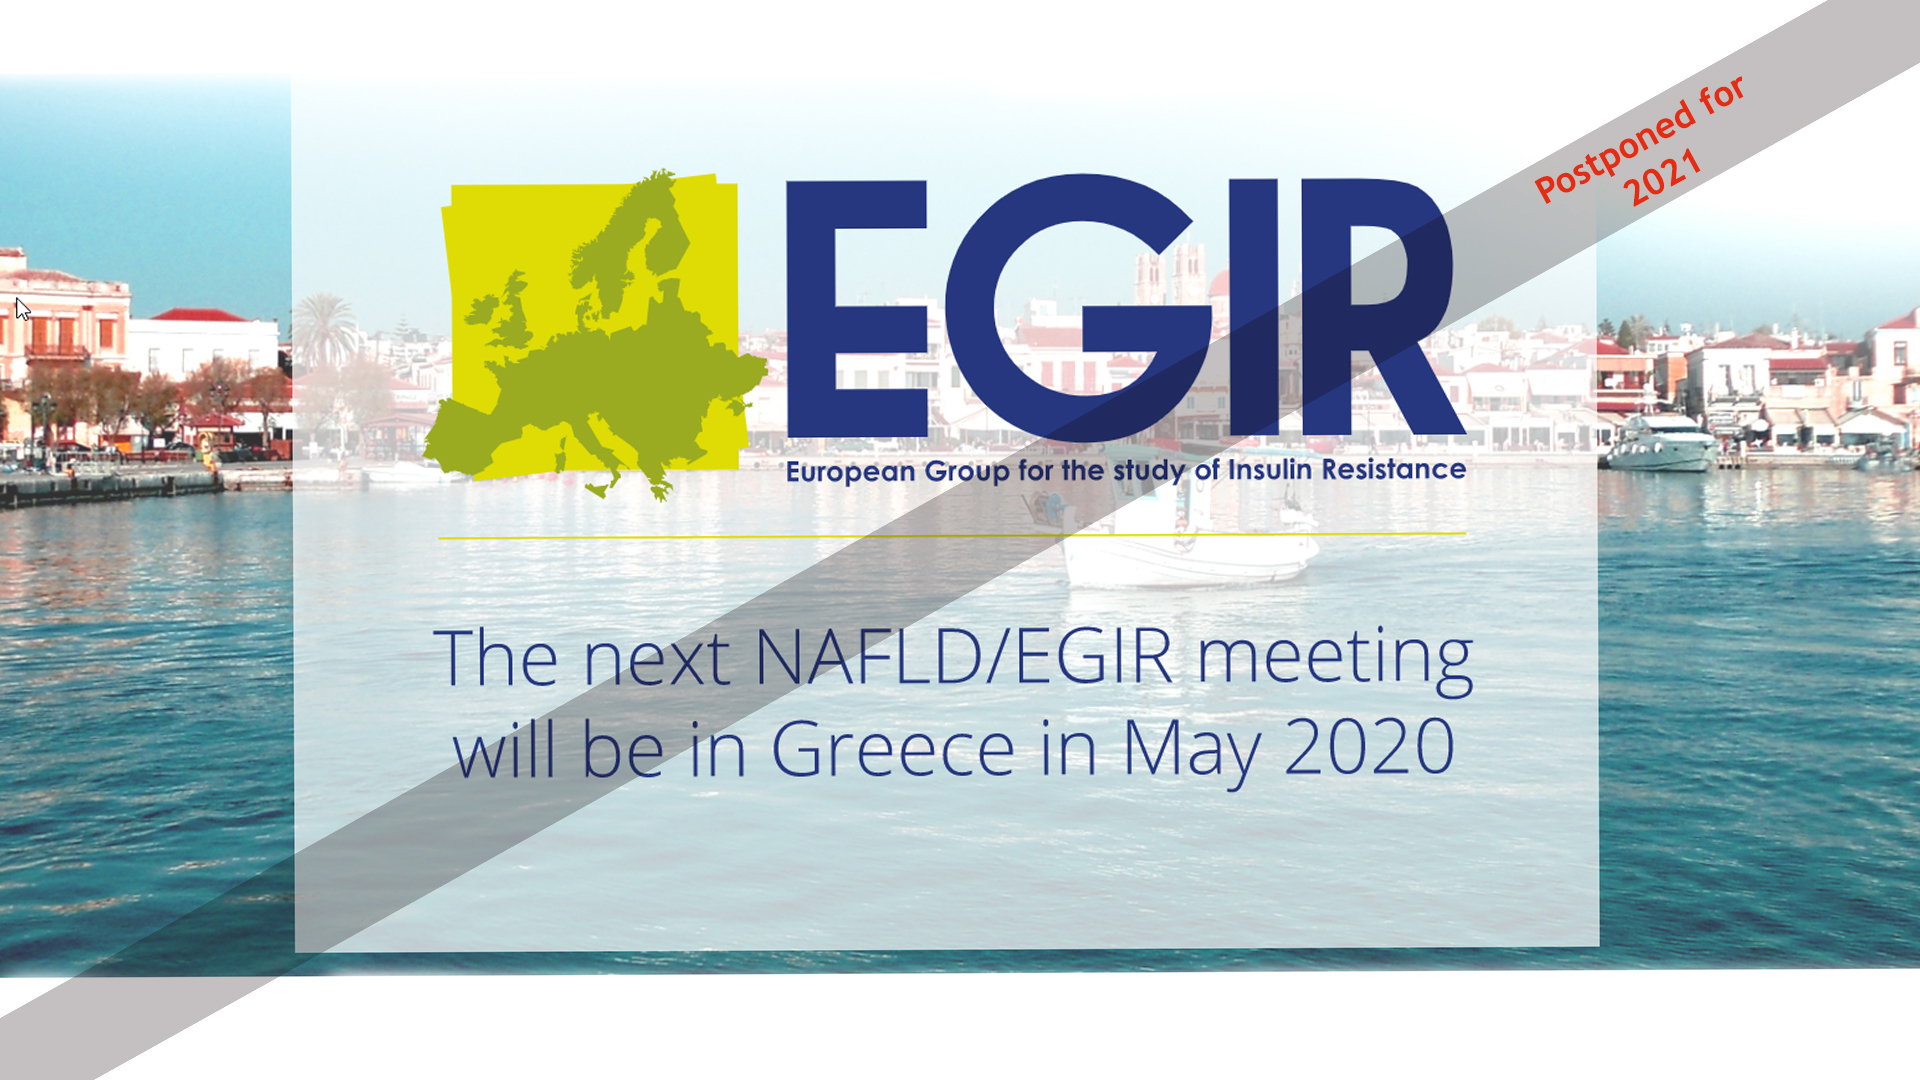 Joint Meeting of the EASD-NAFLD/EGIR Study groups